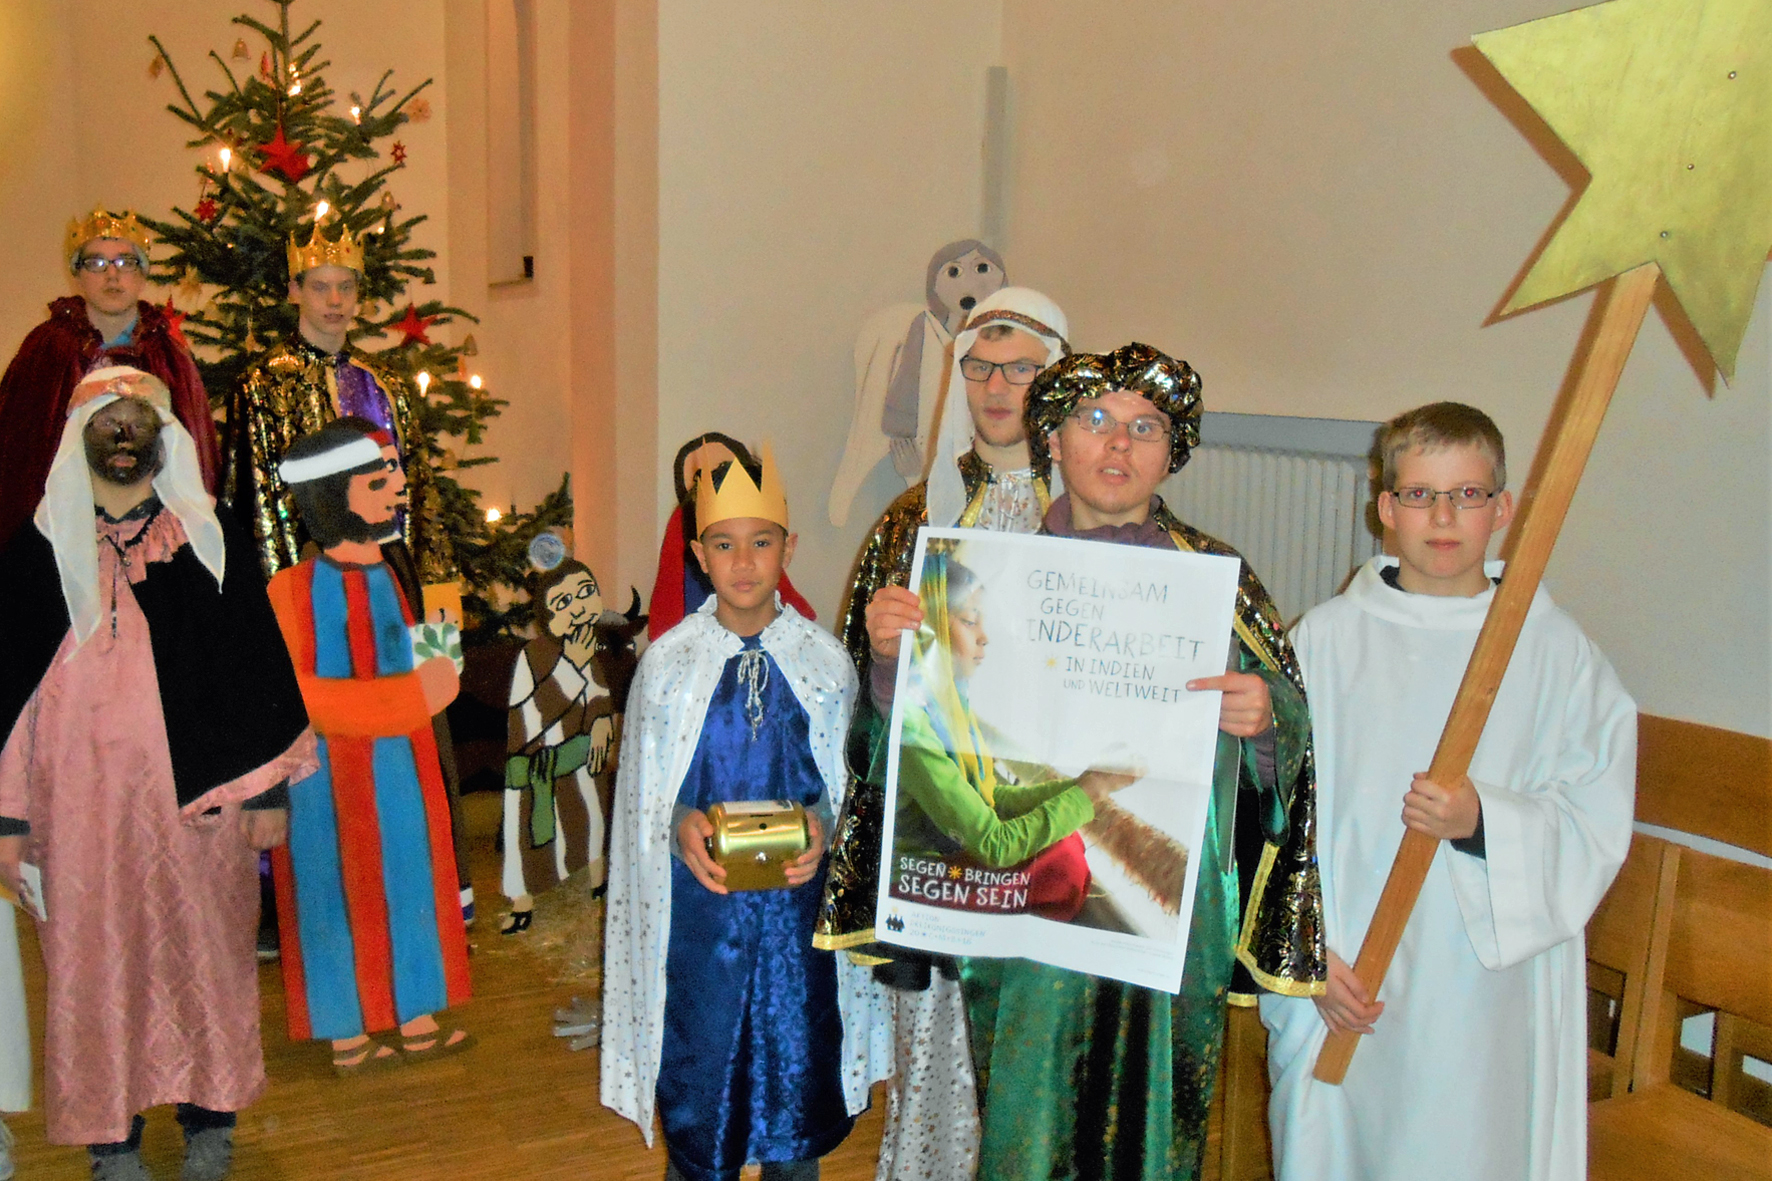 Die Sternsinger in Aktion